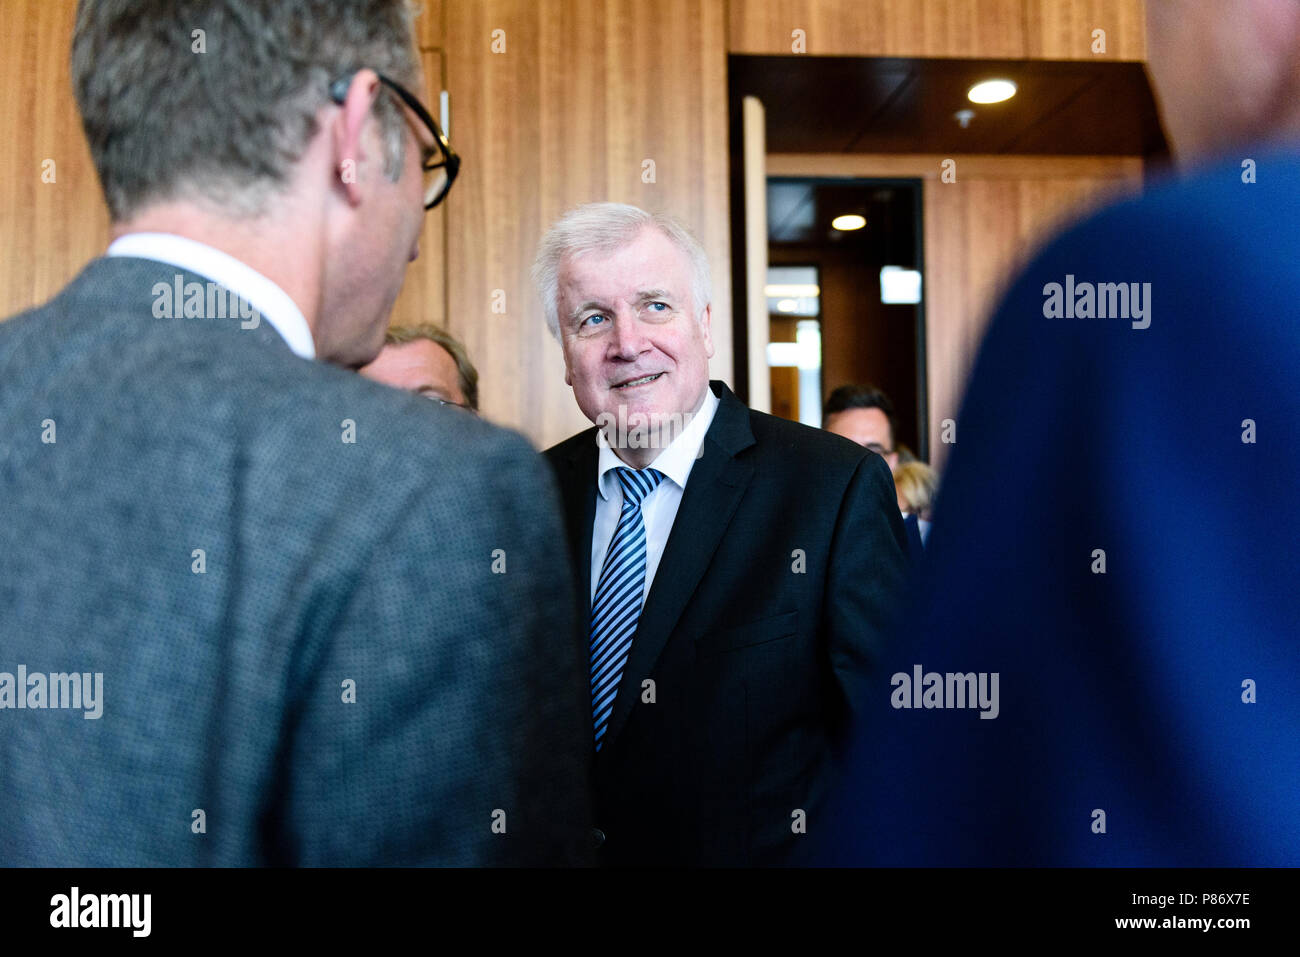 Berlin, Germany. 10th July, 2018. German Federal Minister of Interior, Construction and Homeland, Horst Seehofer of the Christian Social Union (CSU) talks to journalists after the presentation of the ''Masterplan Migration - Measures to Organize, Control and Limit Immigration.'' The plan includes stopping and rejecting migrants who are already registered in other EU countries at the German border. Credit: Markus Heine/SOPA Images/ZUMA Wire/Alamy Live News - Stock Image